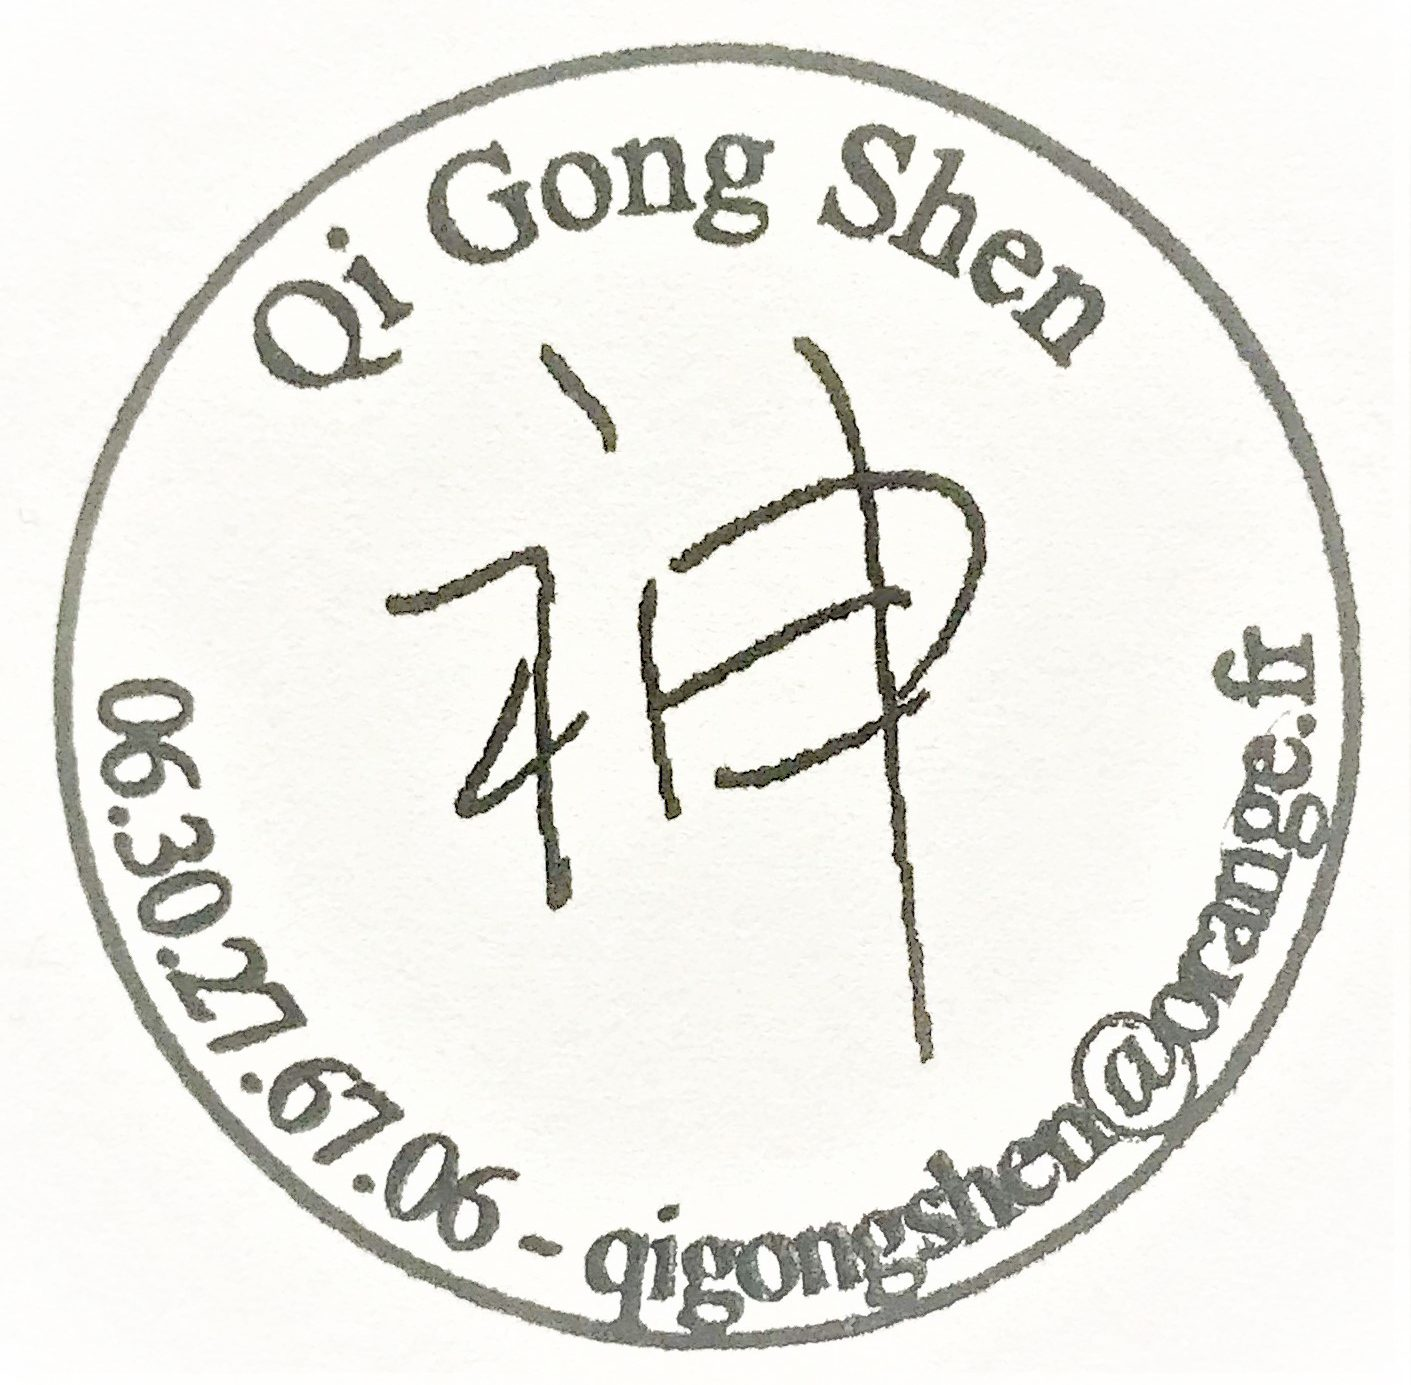 qigong-montpellier.org